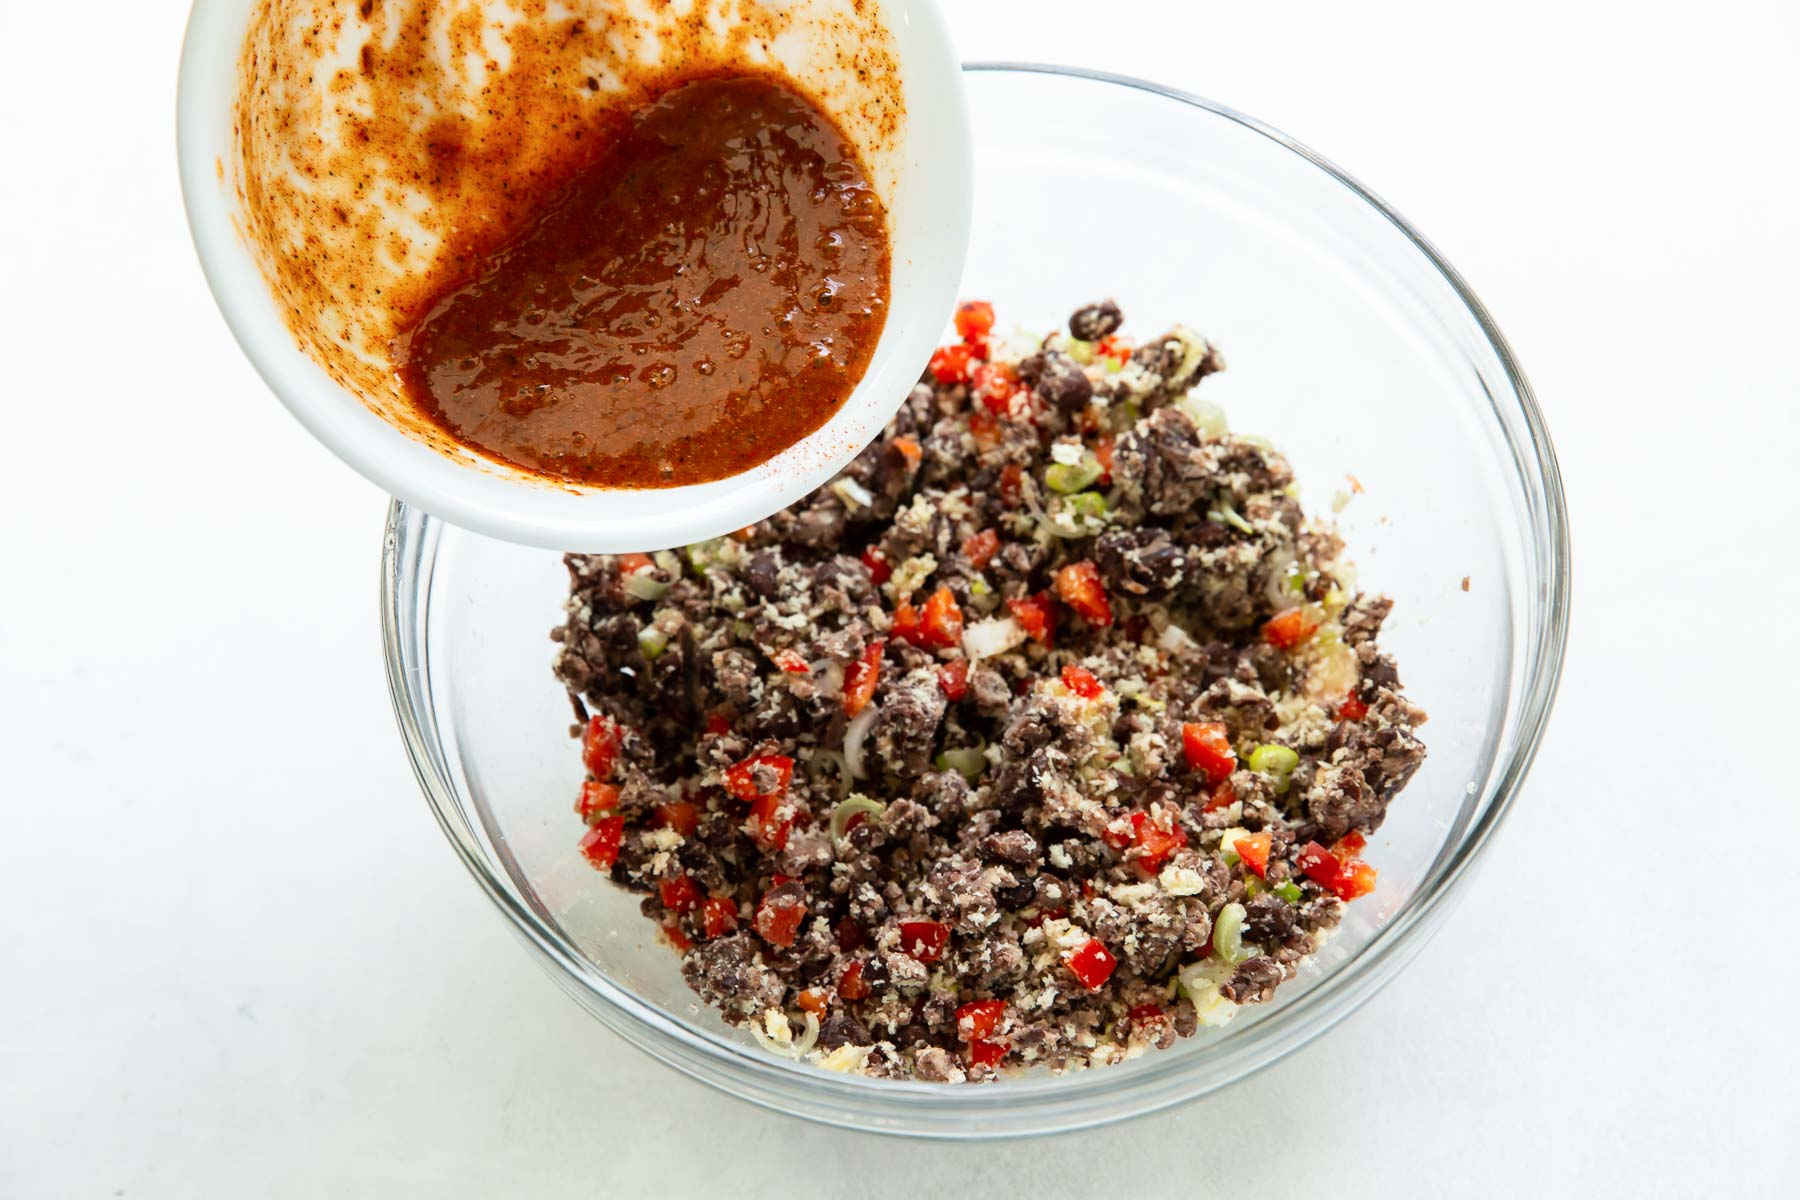 pouring egg and seasoning mixture into black bean mixture